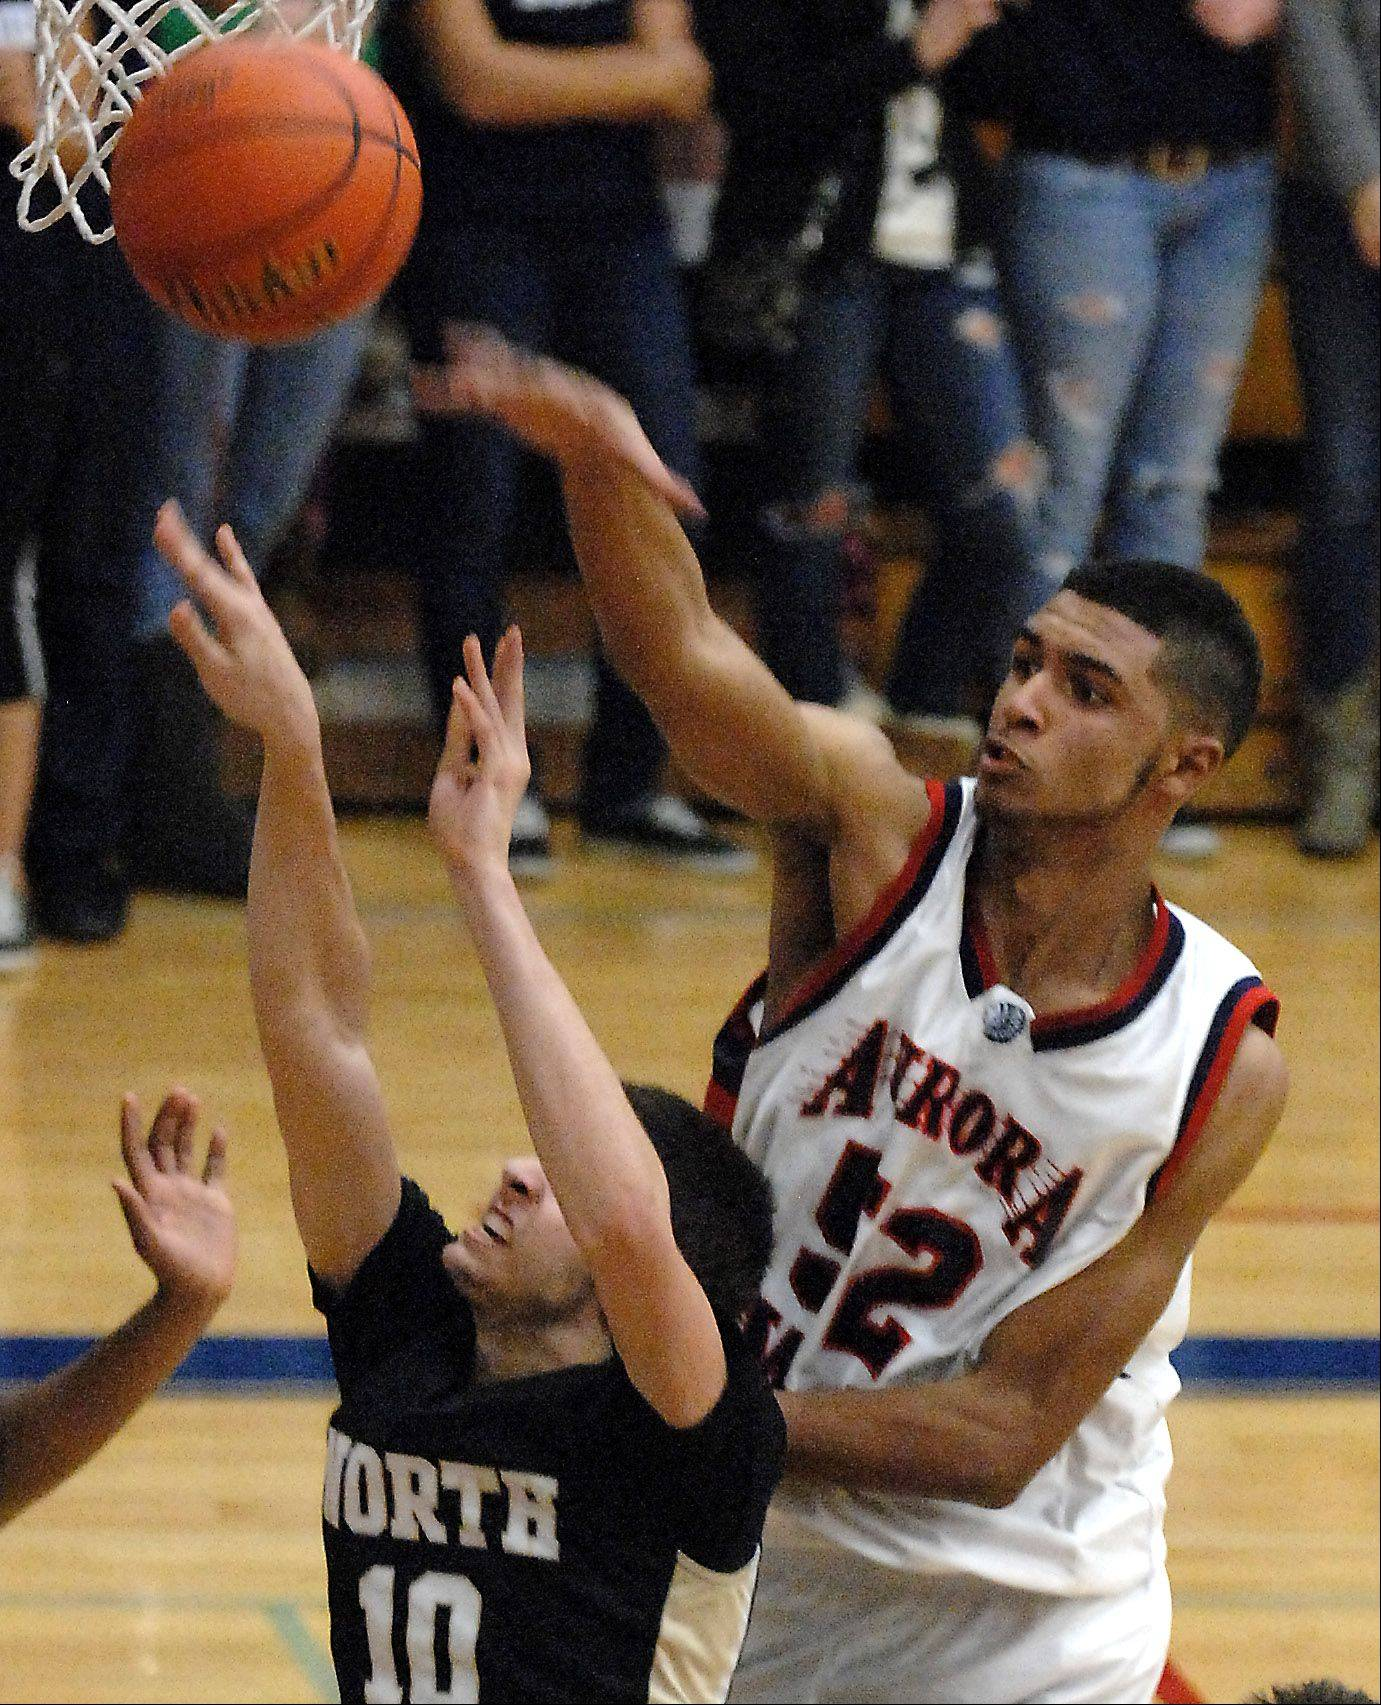 West Aurora's Joshua McAuley blocks a shot by Glenbard North's Pasquale Fiduccia.